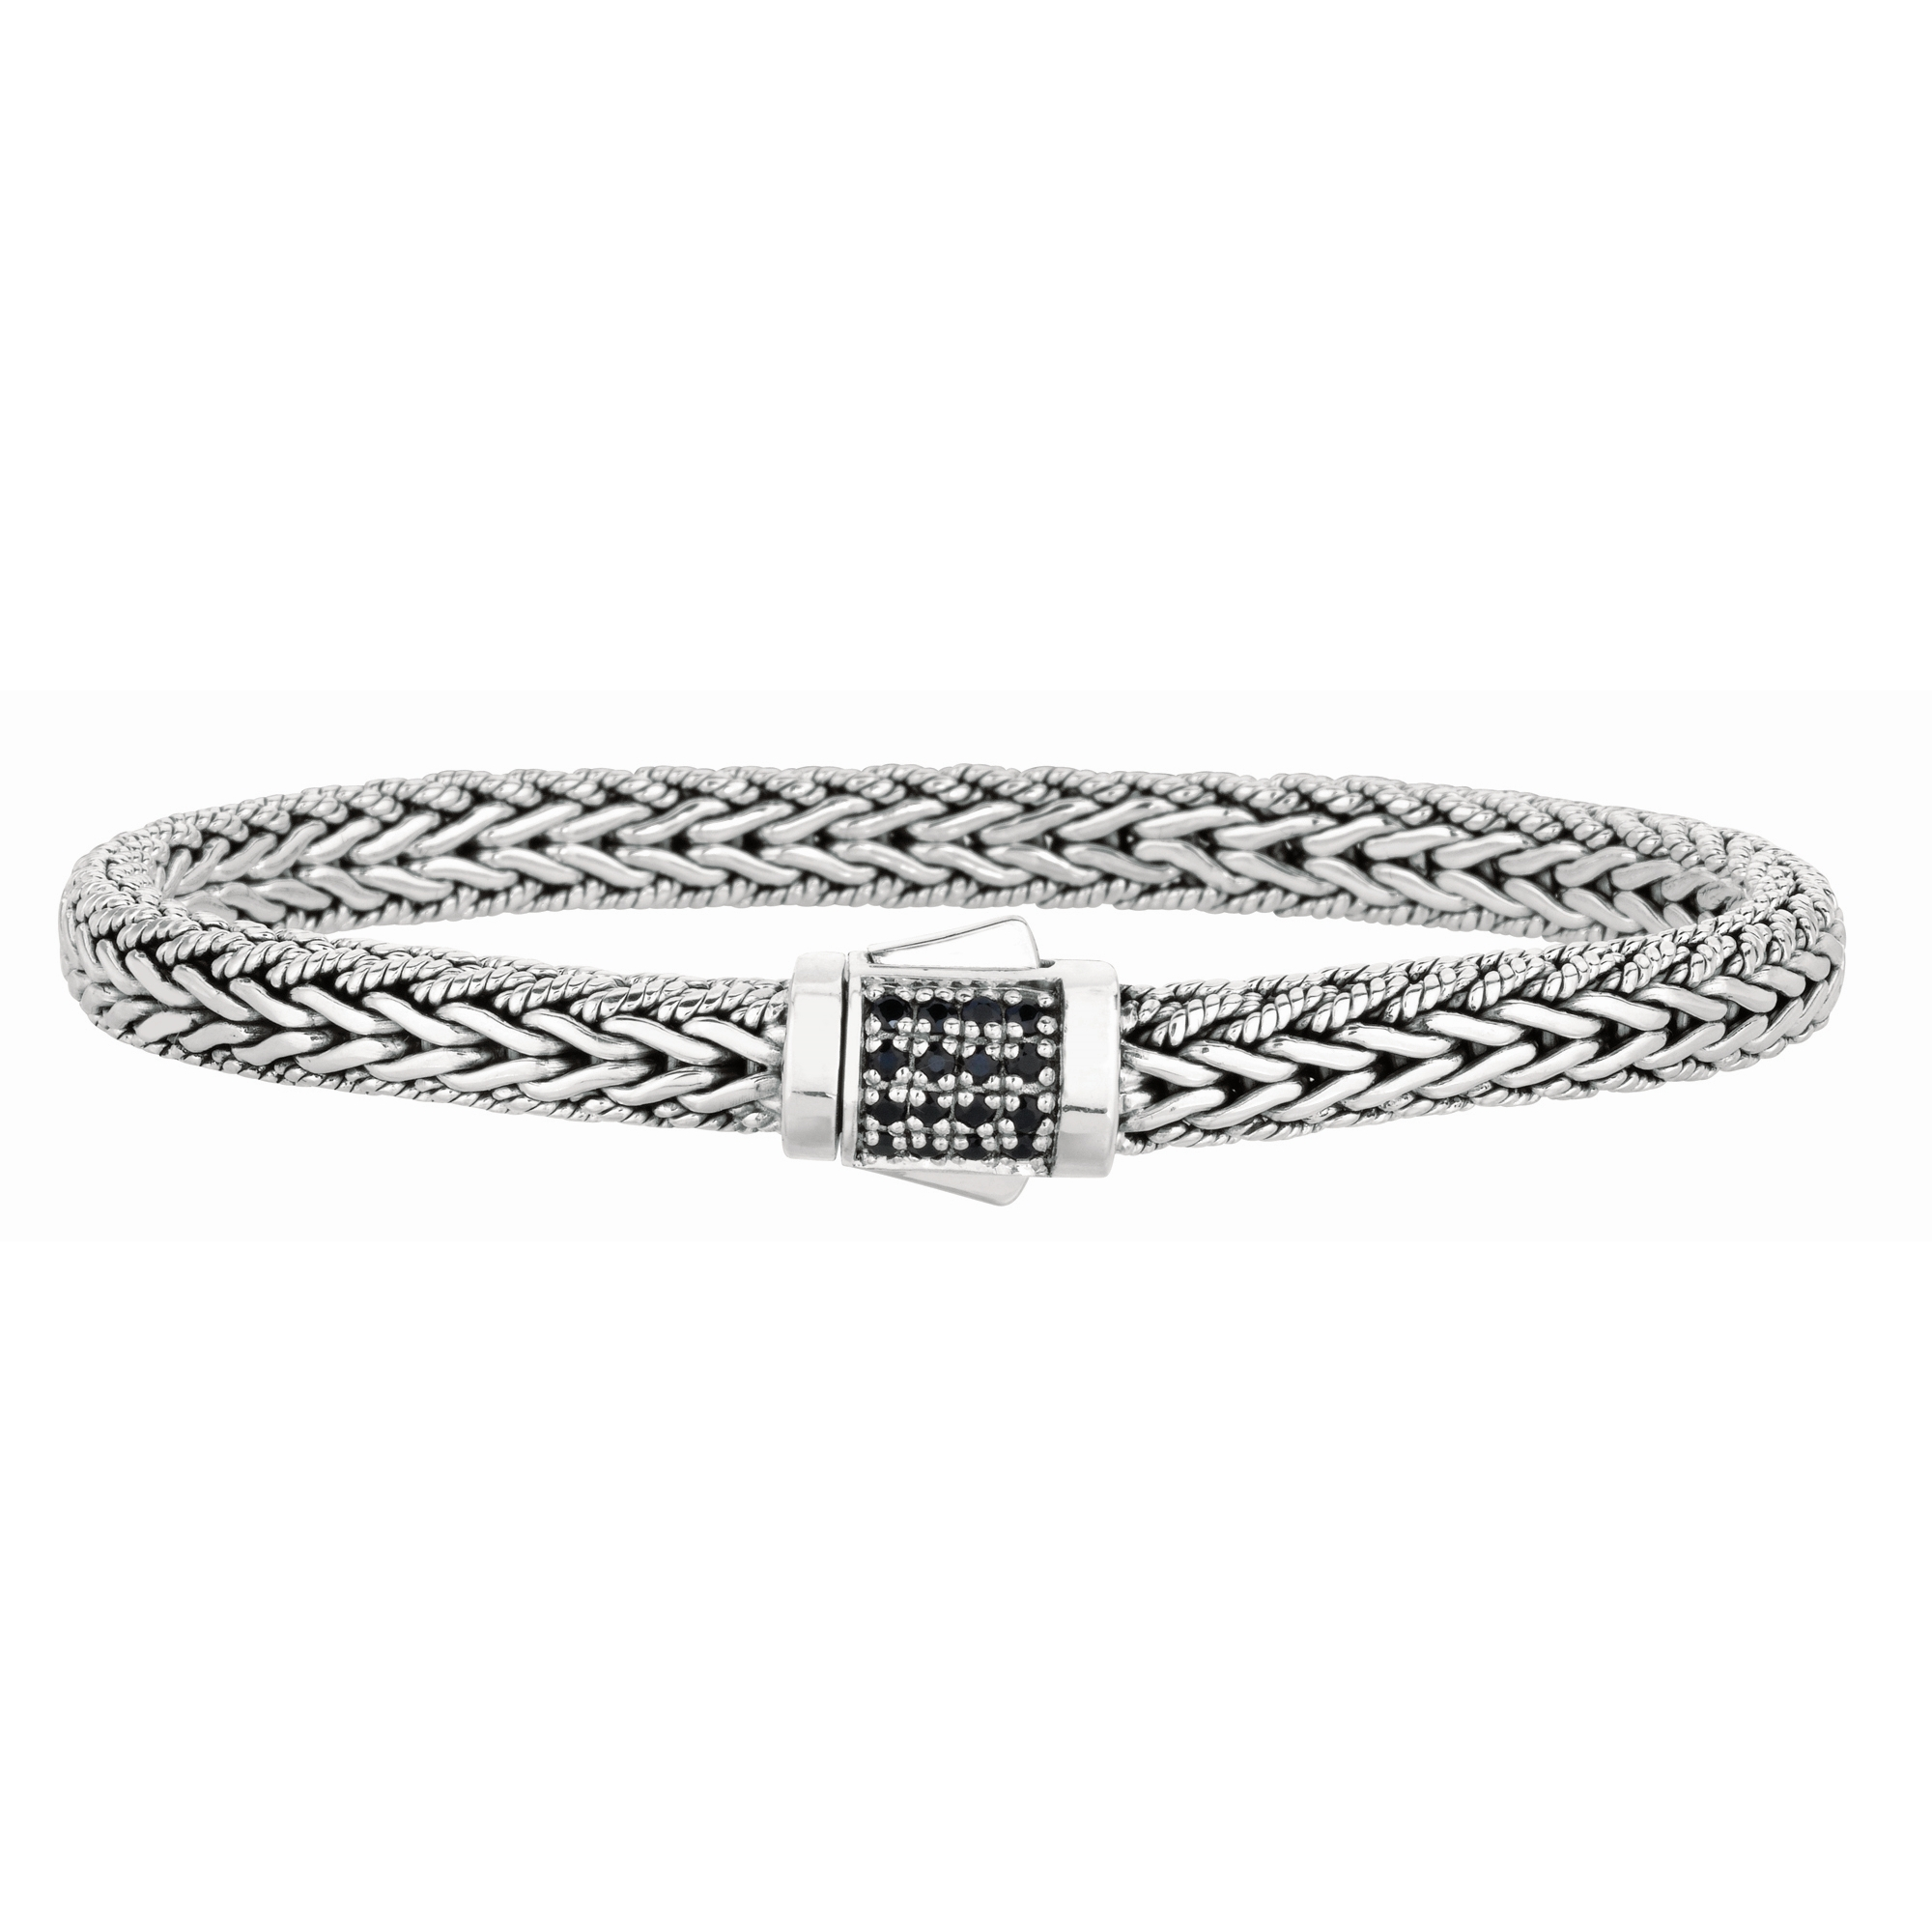 7mm Sterling Silver Narrow Wheat Patterned with Piping Trim 8.2 5 inches Bracelet with Black Sapphire Square Cluster at Clasp.